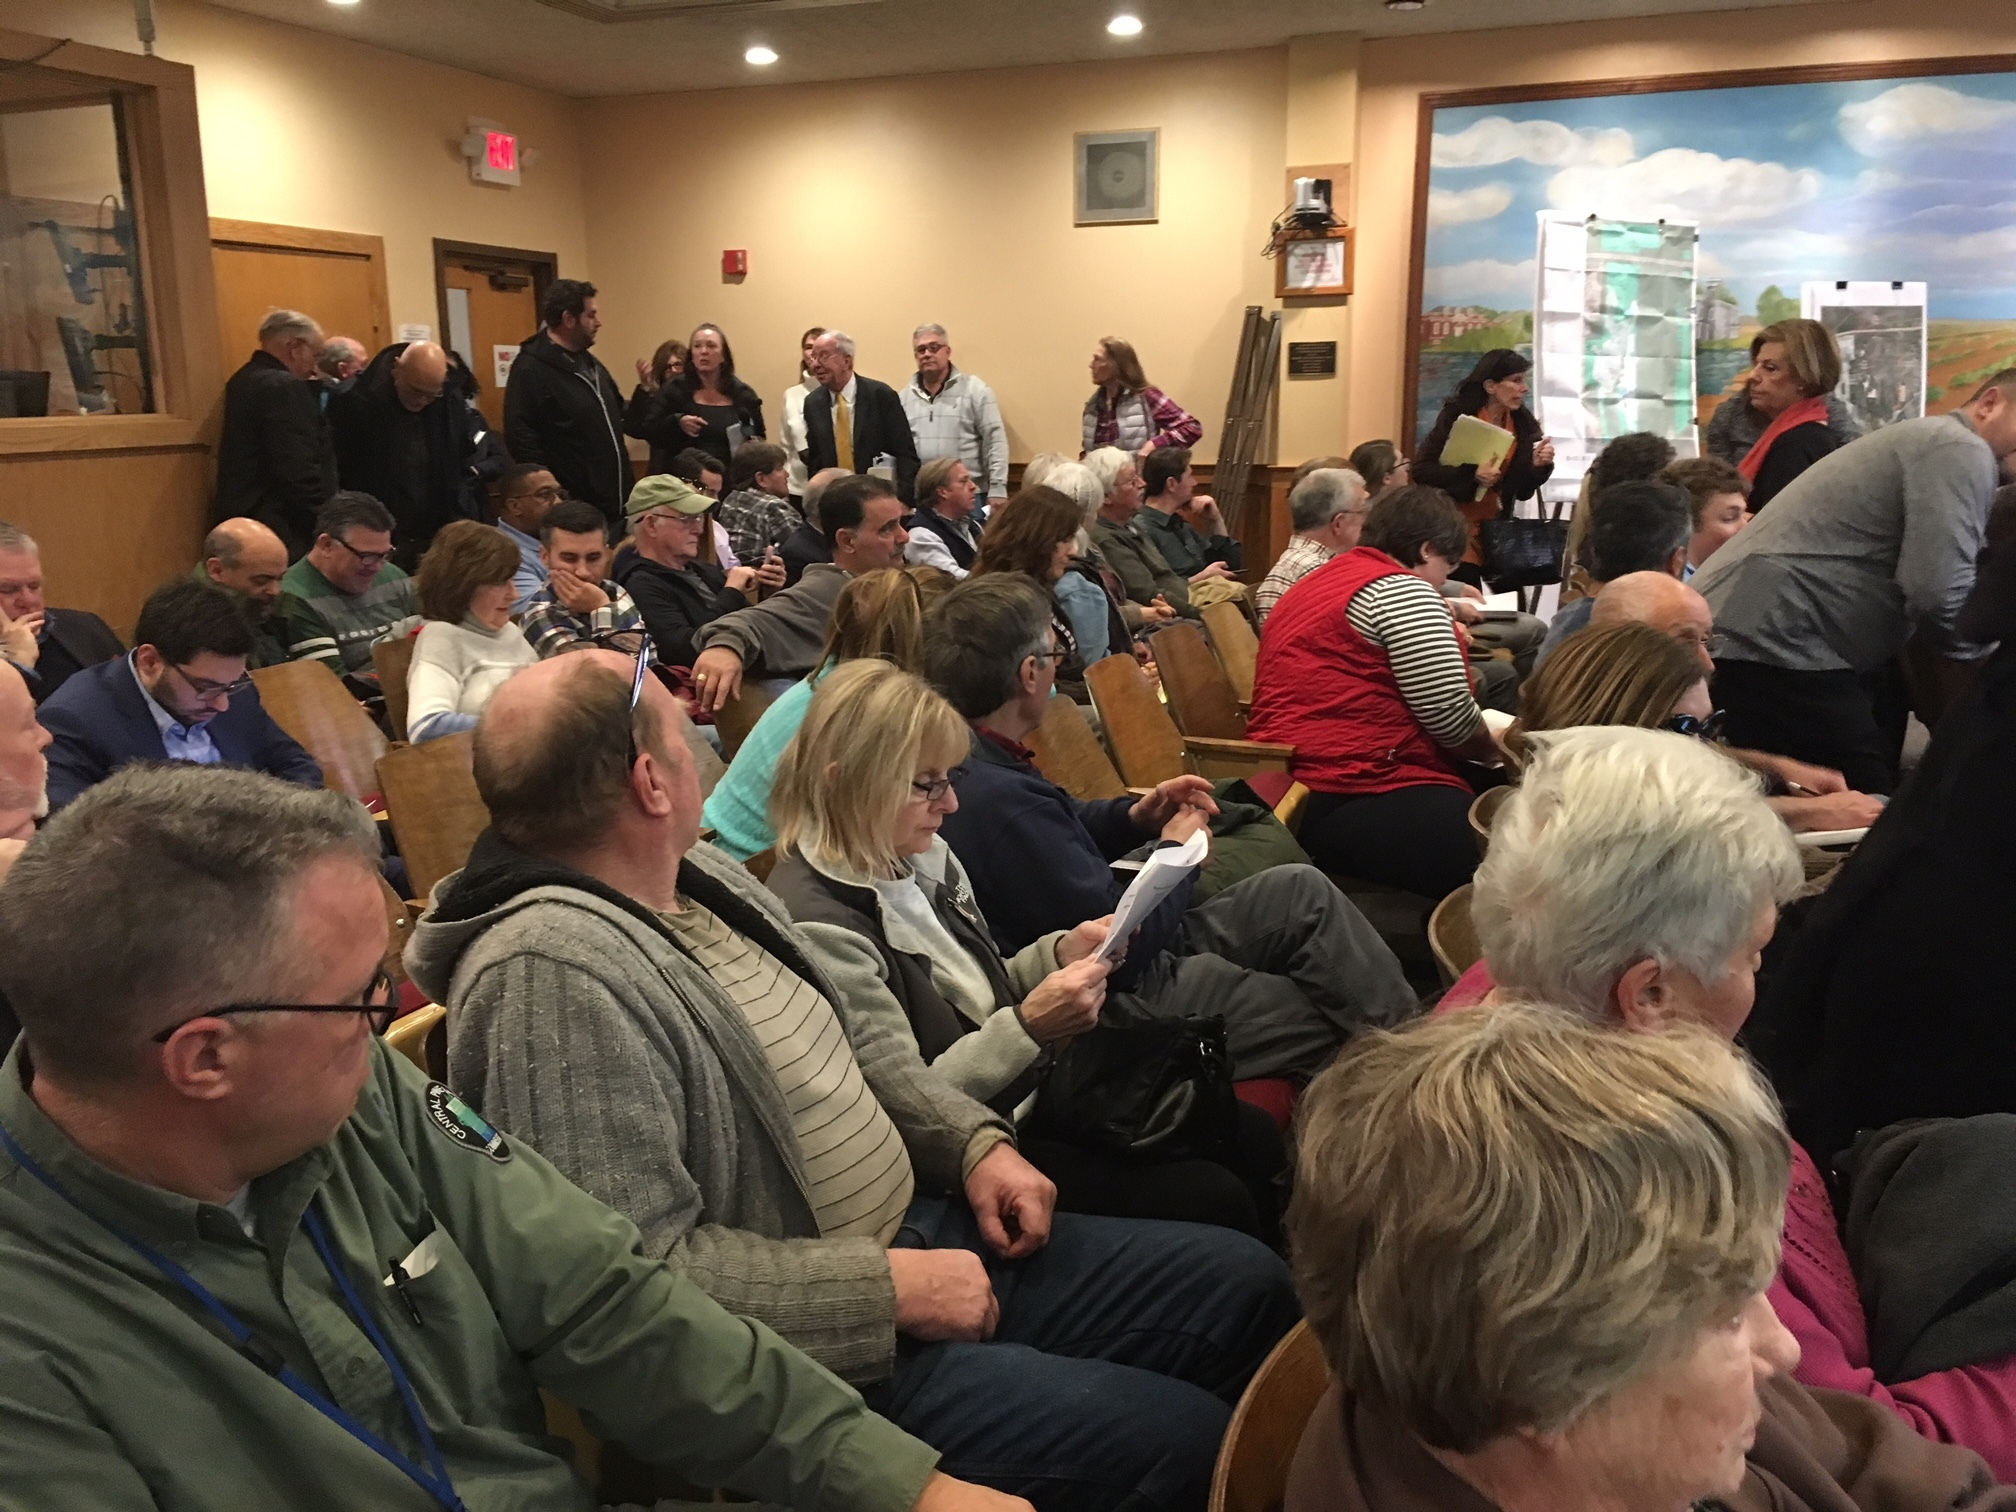 Supporters and opponents filled the board room at Riverhead Town Hall on February 19. KITTY MERRILL